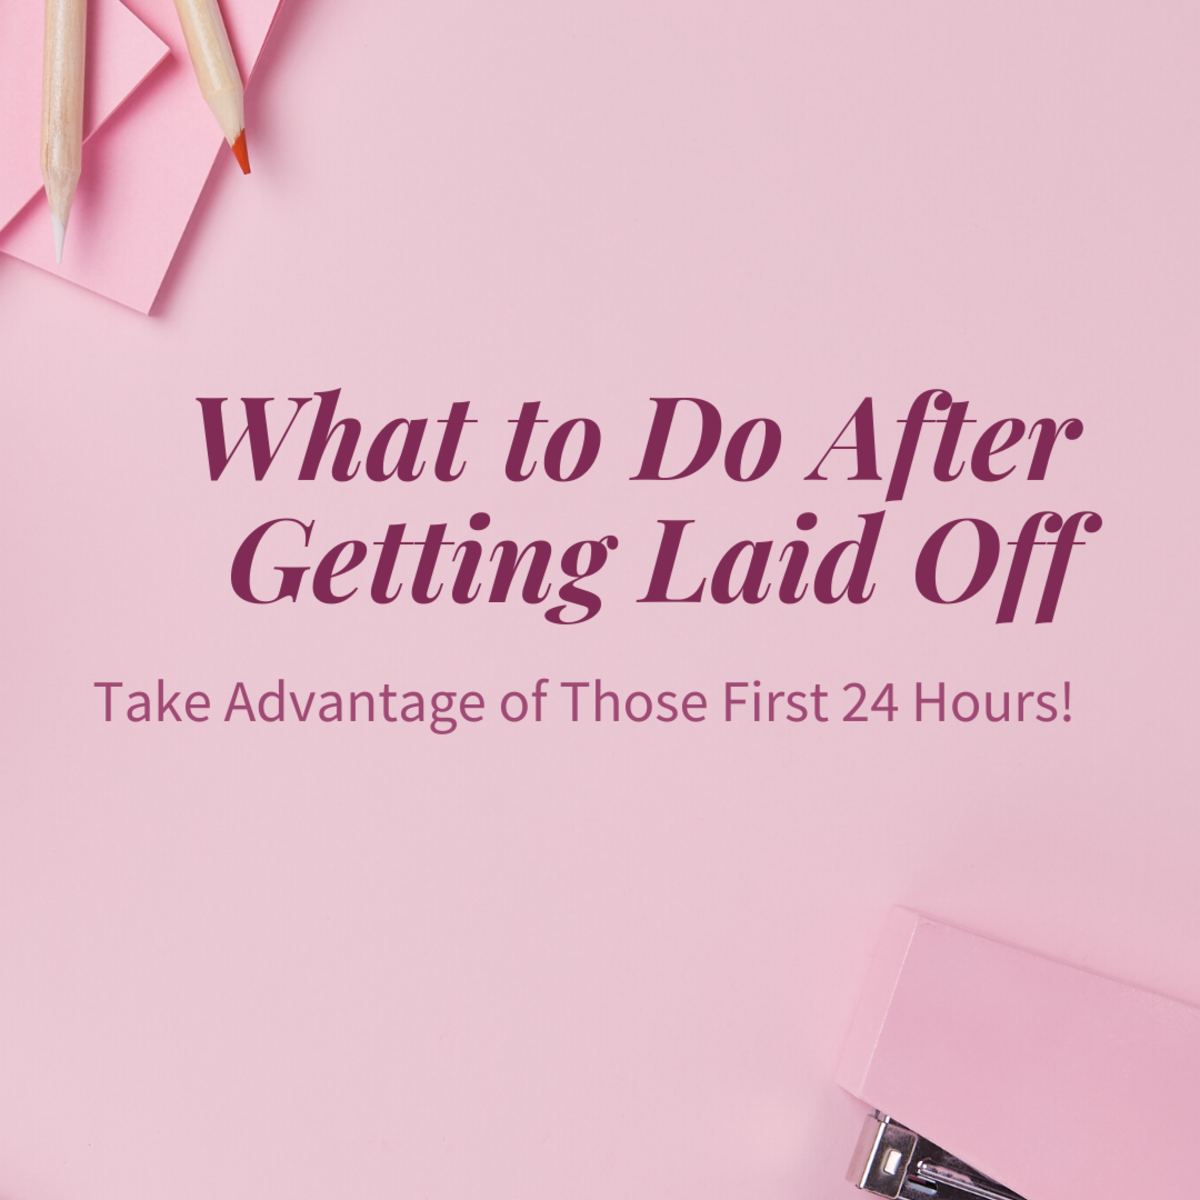 Lost Your Job? 6 Things to Do in the First 24 Hours